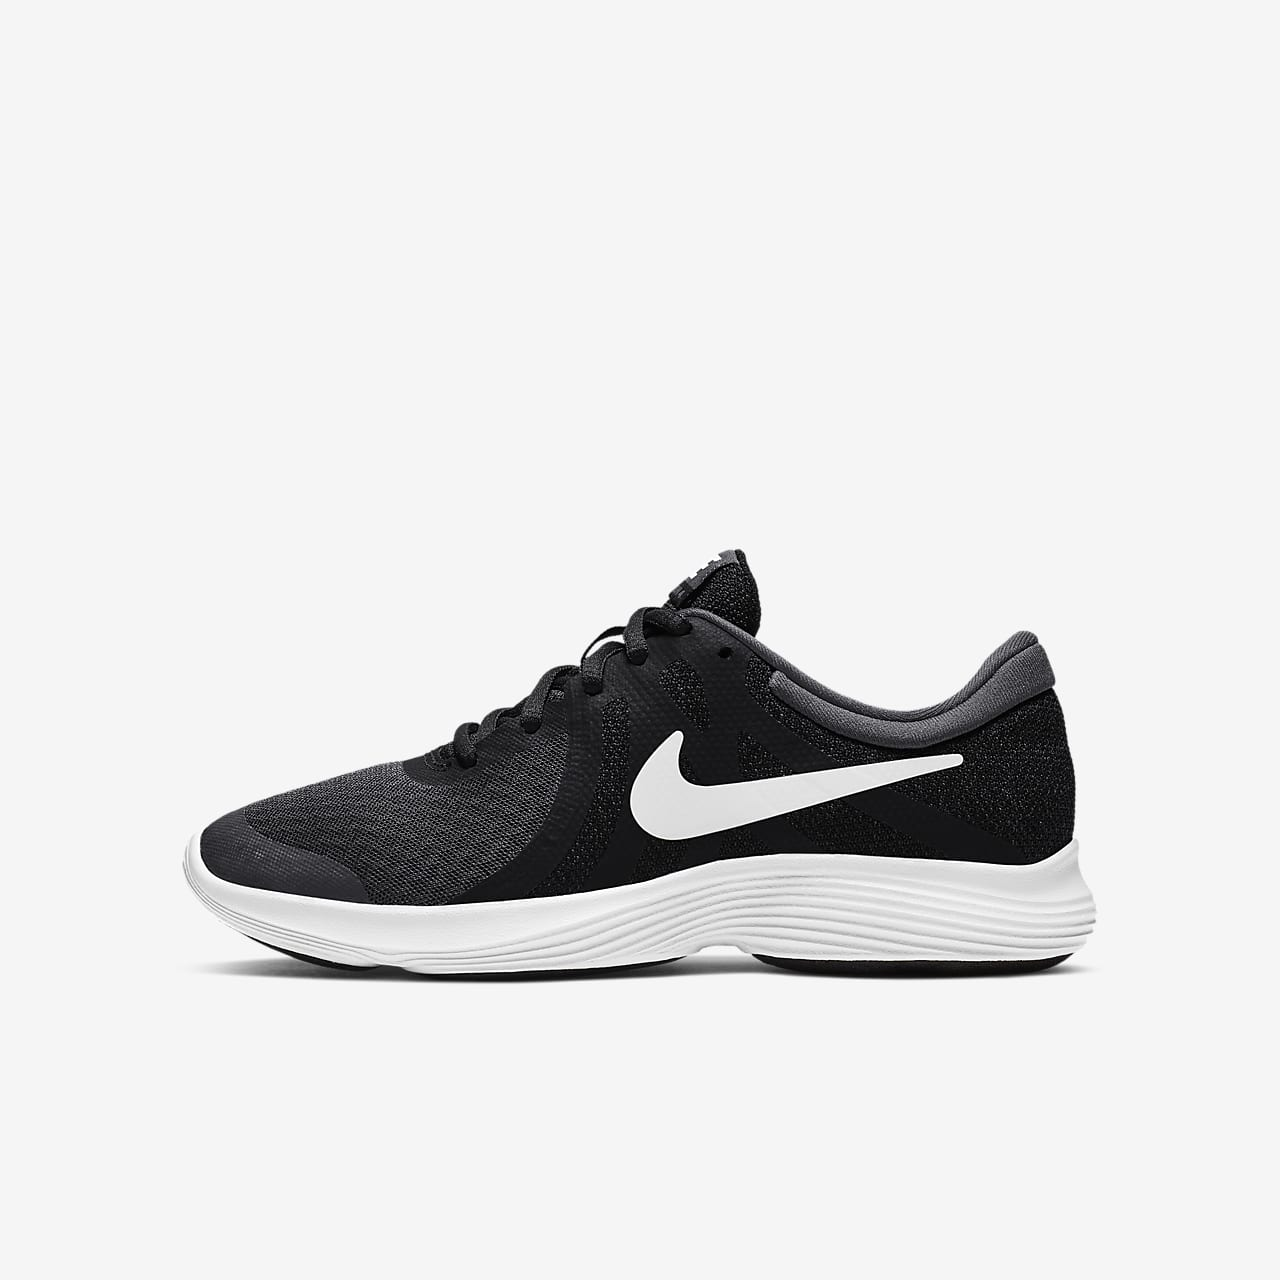 ... Nike Revolution 4 Big Kids' Running Shoe